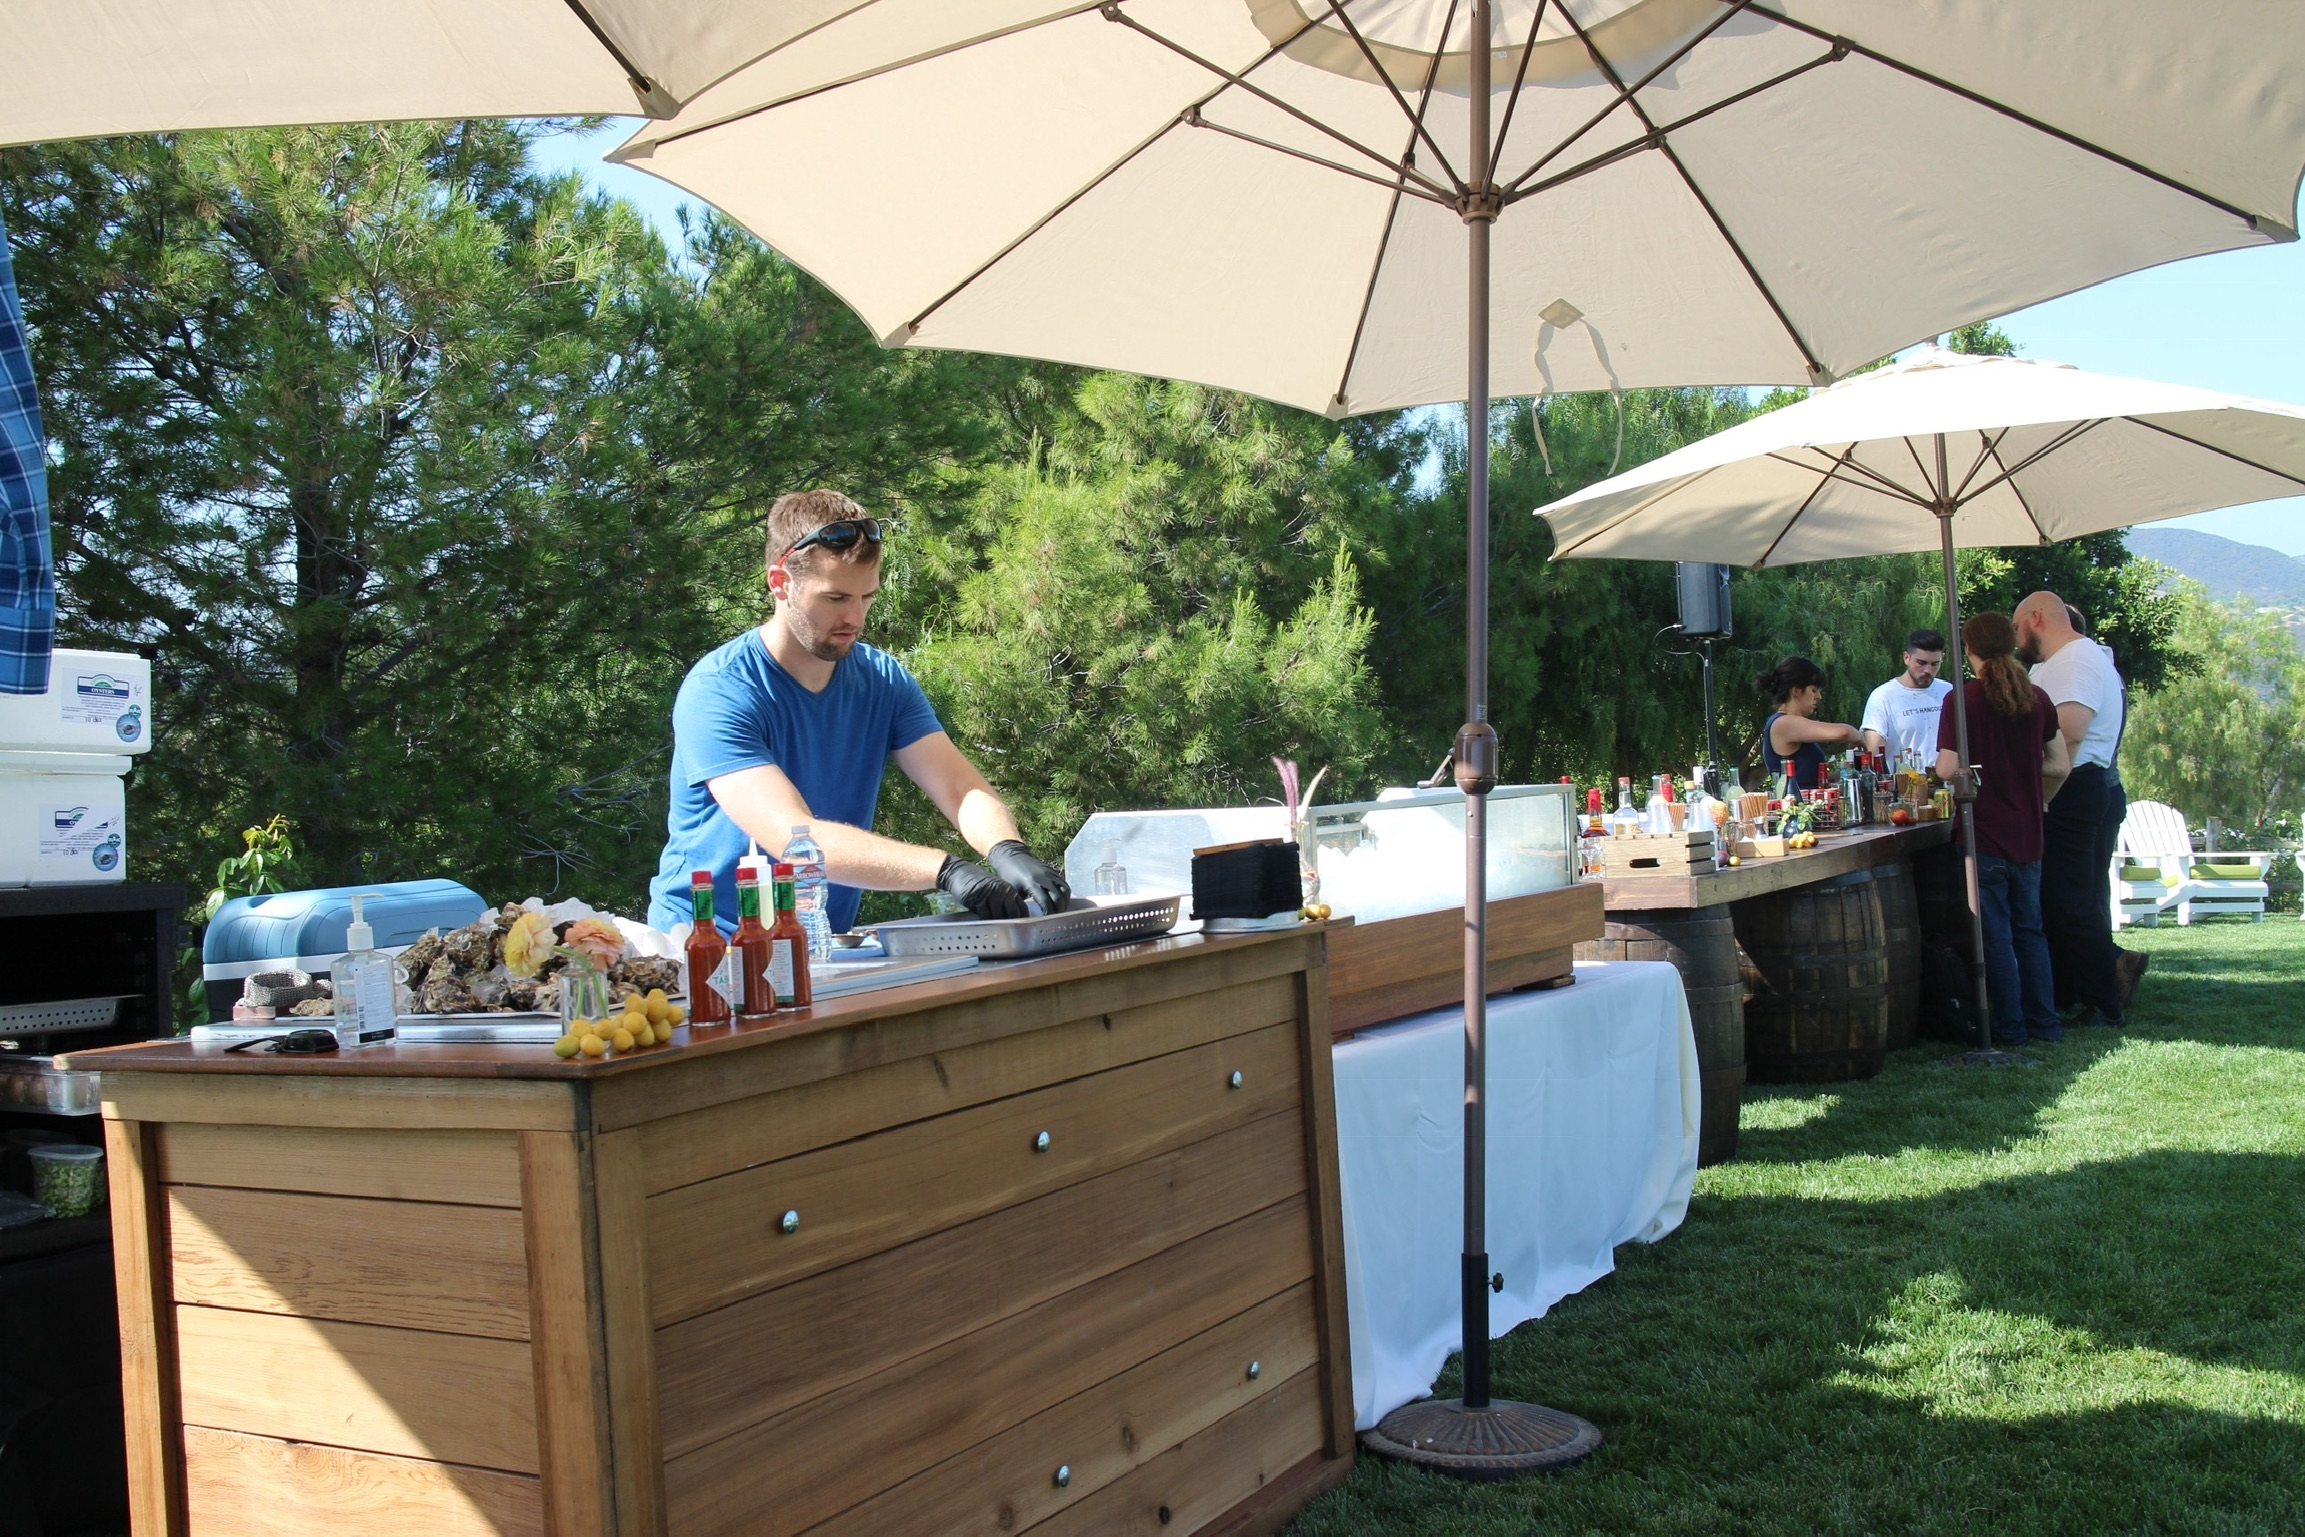 Wedding in Malibu..setting up the oyster bar for 200 guests.